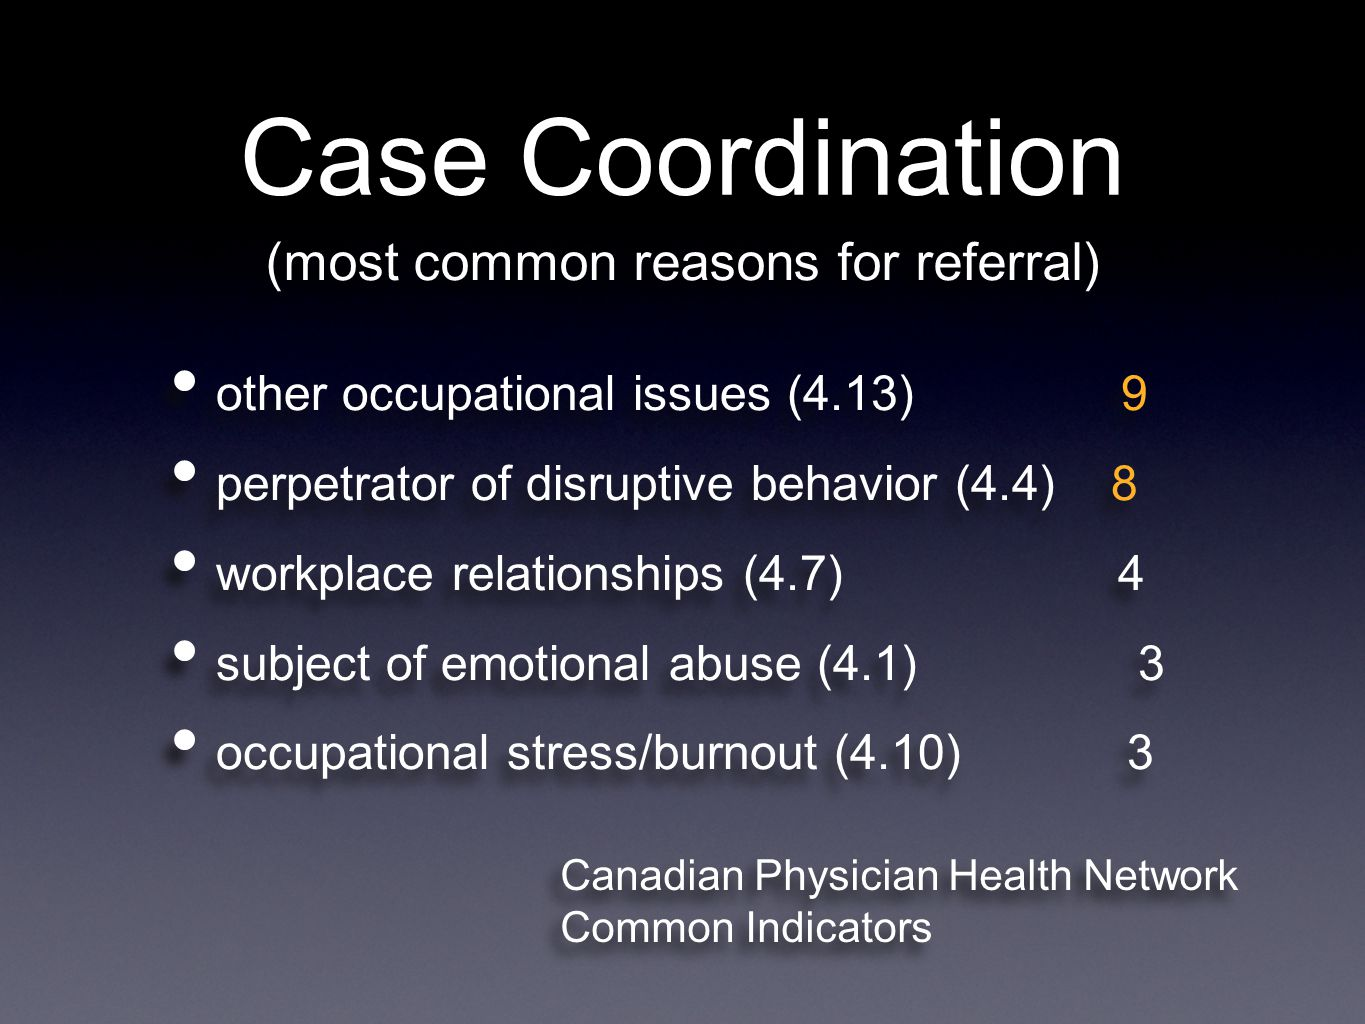 Case Coordination other occupational issues (4.13) 9 perpetrator of disruptive behavior (4.4) 8 workplace relationships (4.7) 4 subject of emotional abuse (4.1) 3 occupational stress/burnout (4.10) 3 other occupational issues (4.13) 9 perpetrator of disruptive behavior (4.4) 8 workplace relationships (4.7) 4 subject of emotional abuse (4.1) 3 occupational stress/burnout (4.10) 3 (most common reasons for referral) Canadian Physician Health Network Common Indicators Canadian Physician Health Network Common Indicators